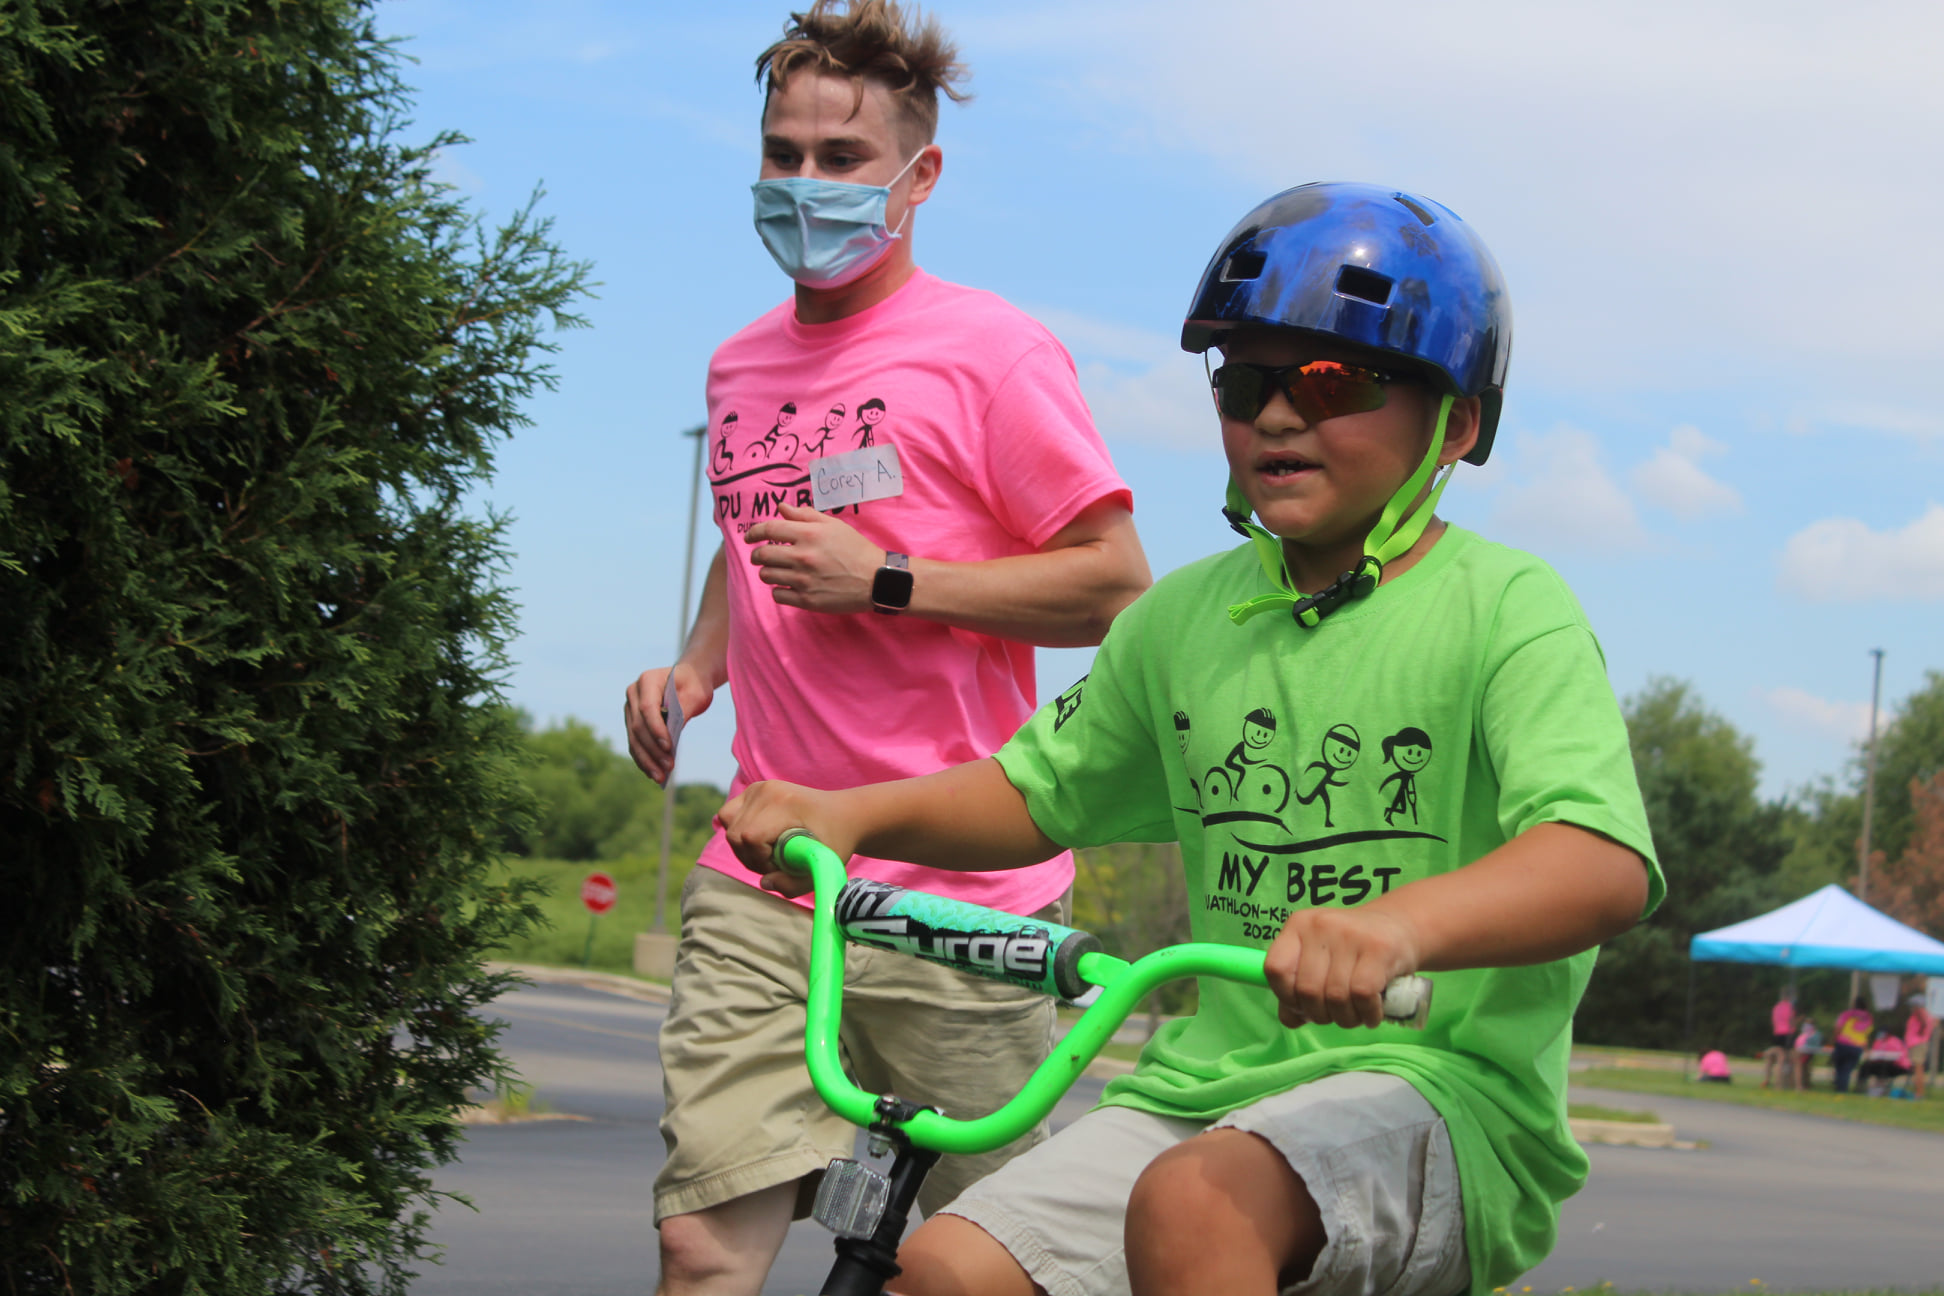 Volunteer running next to a young boy on bike